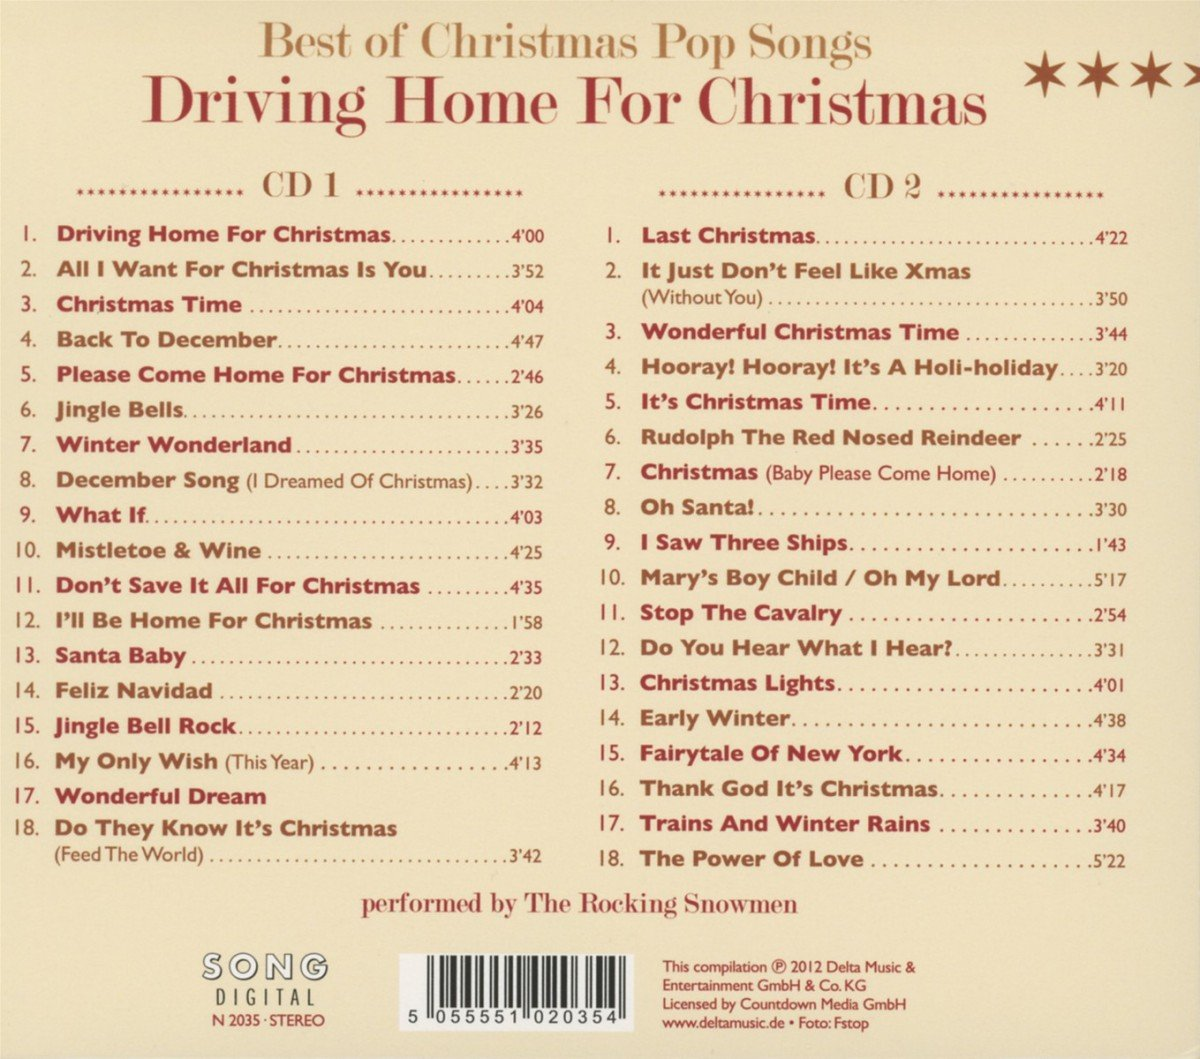 various driving home for christmas best of christmas pop s amazoncom music - Best Christmas Pop Songs